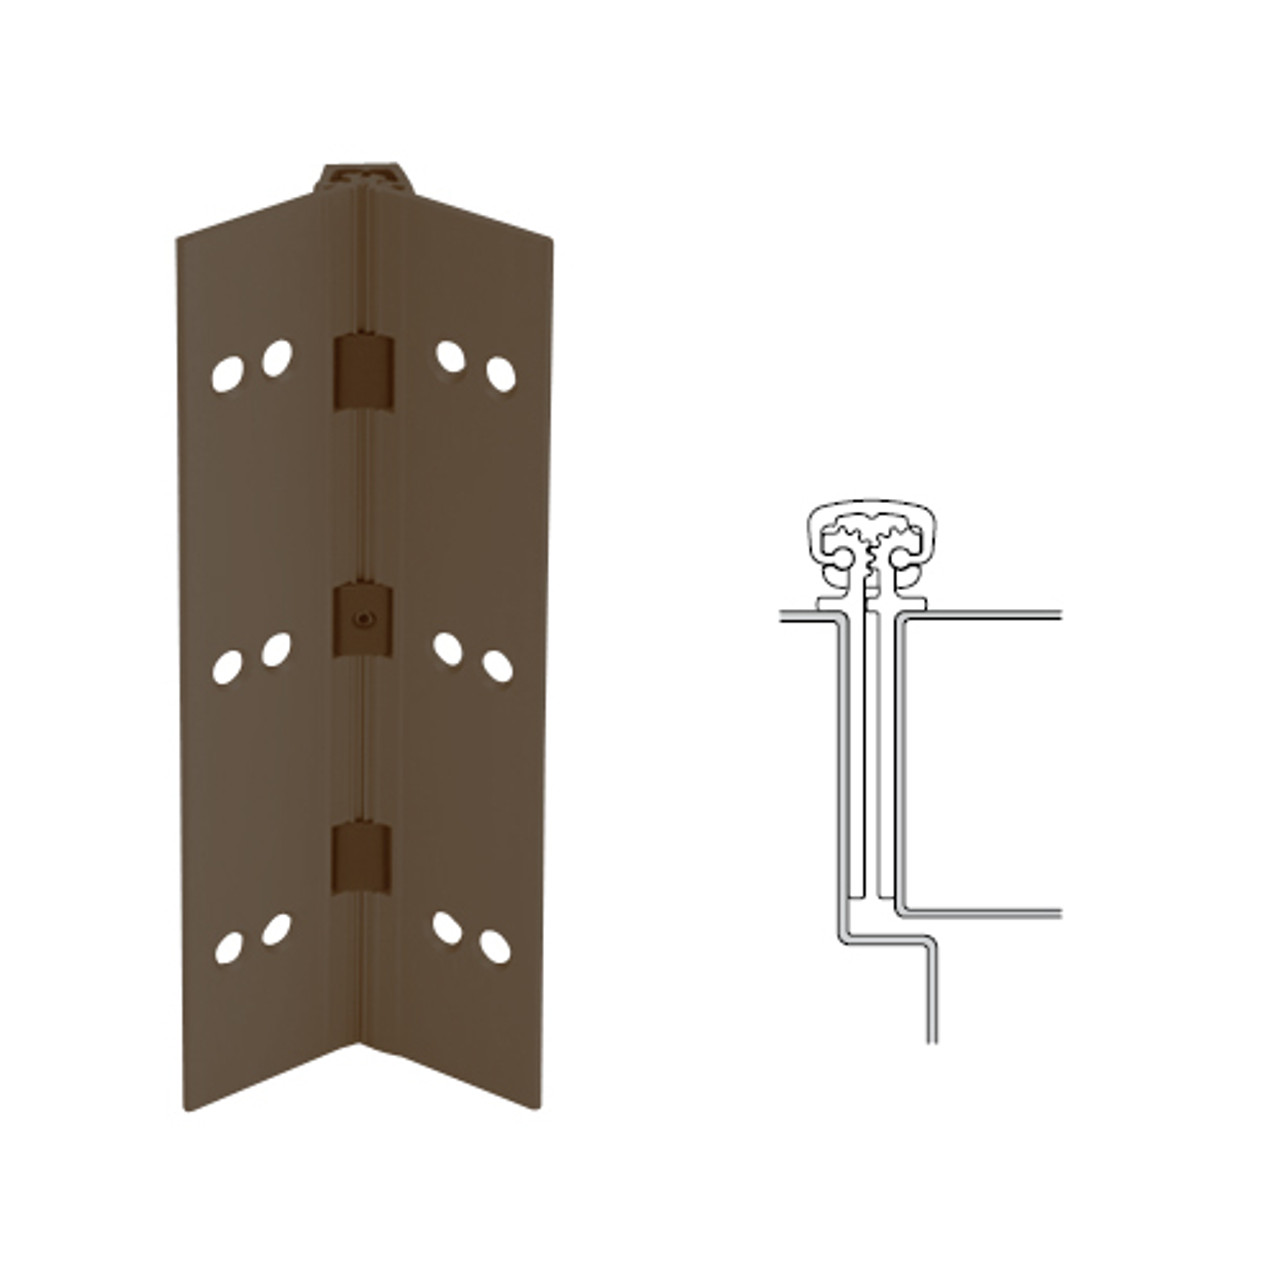 027XY-313AN-85-SECWDWD IVES Full Mortise Continuous Geared Hinges with Security Screws - Hex Pin Drive in Dark Bronze Anodized